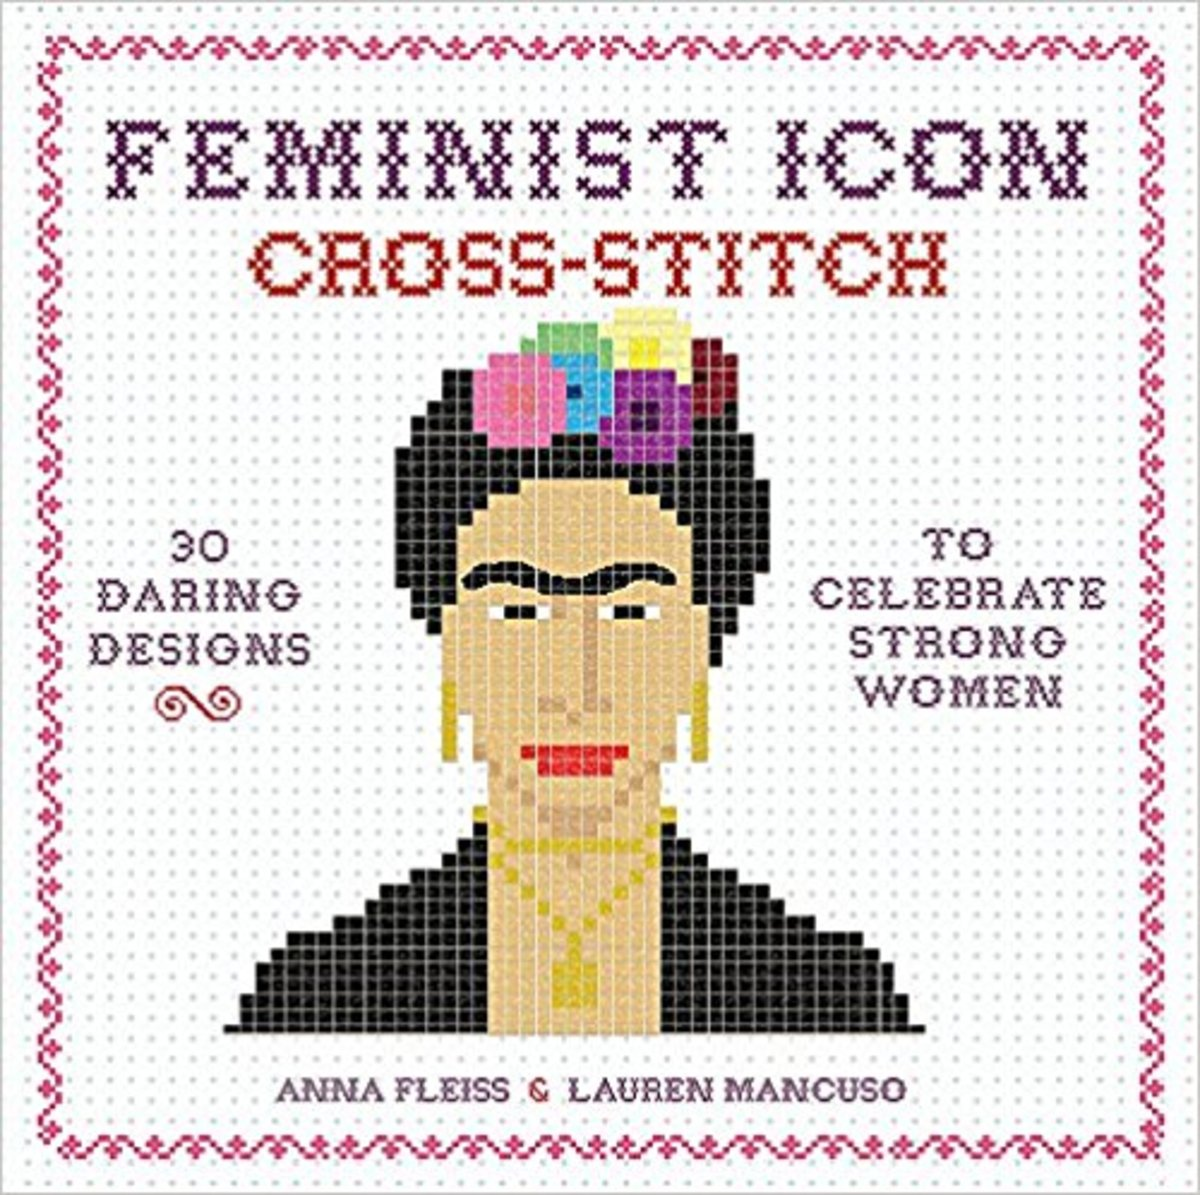 """Feminist Icon Cross-Stitch""—a great gift idea for Democrat and feminist moms."